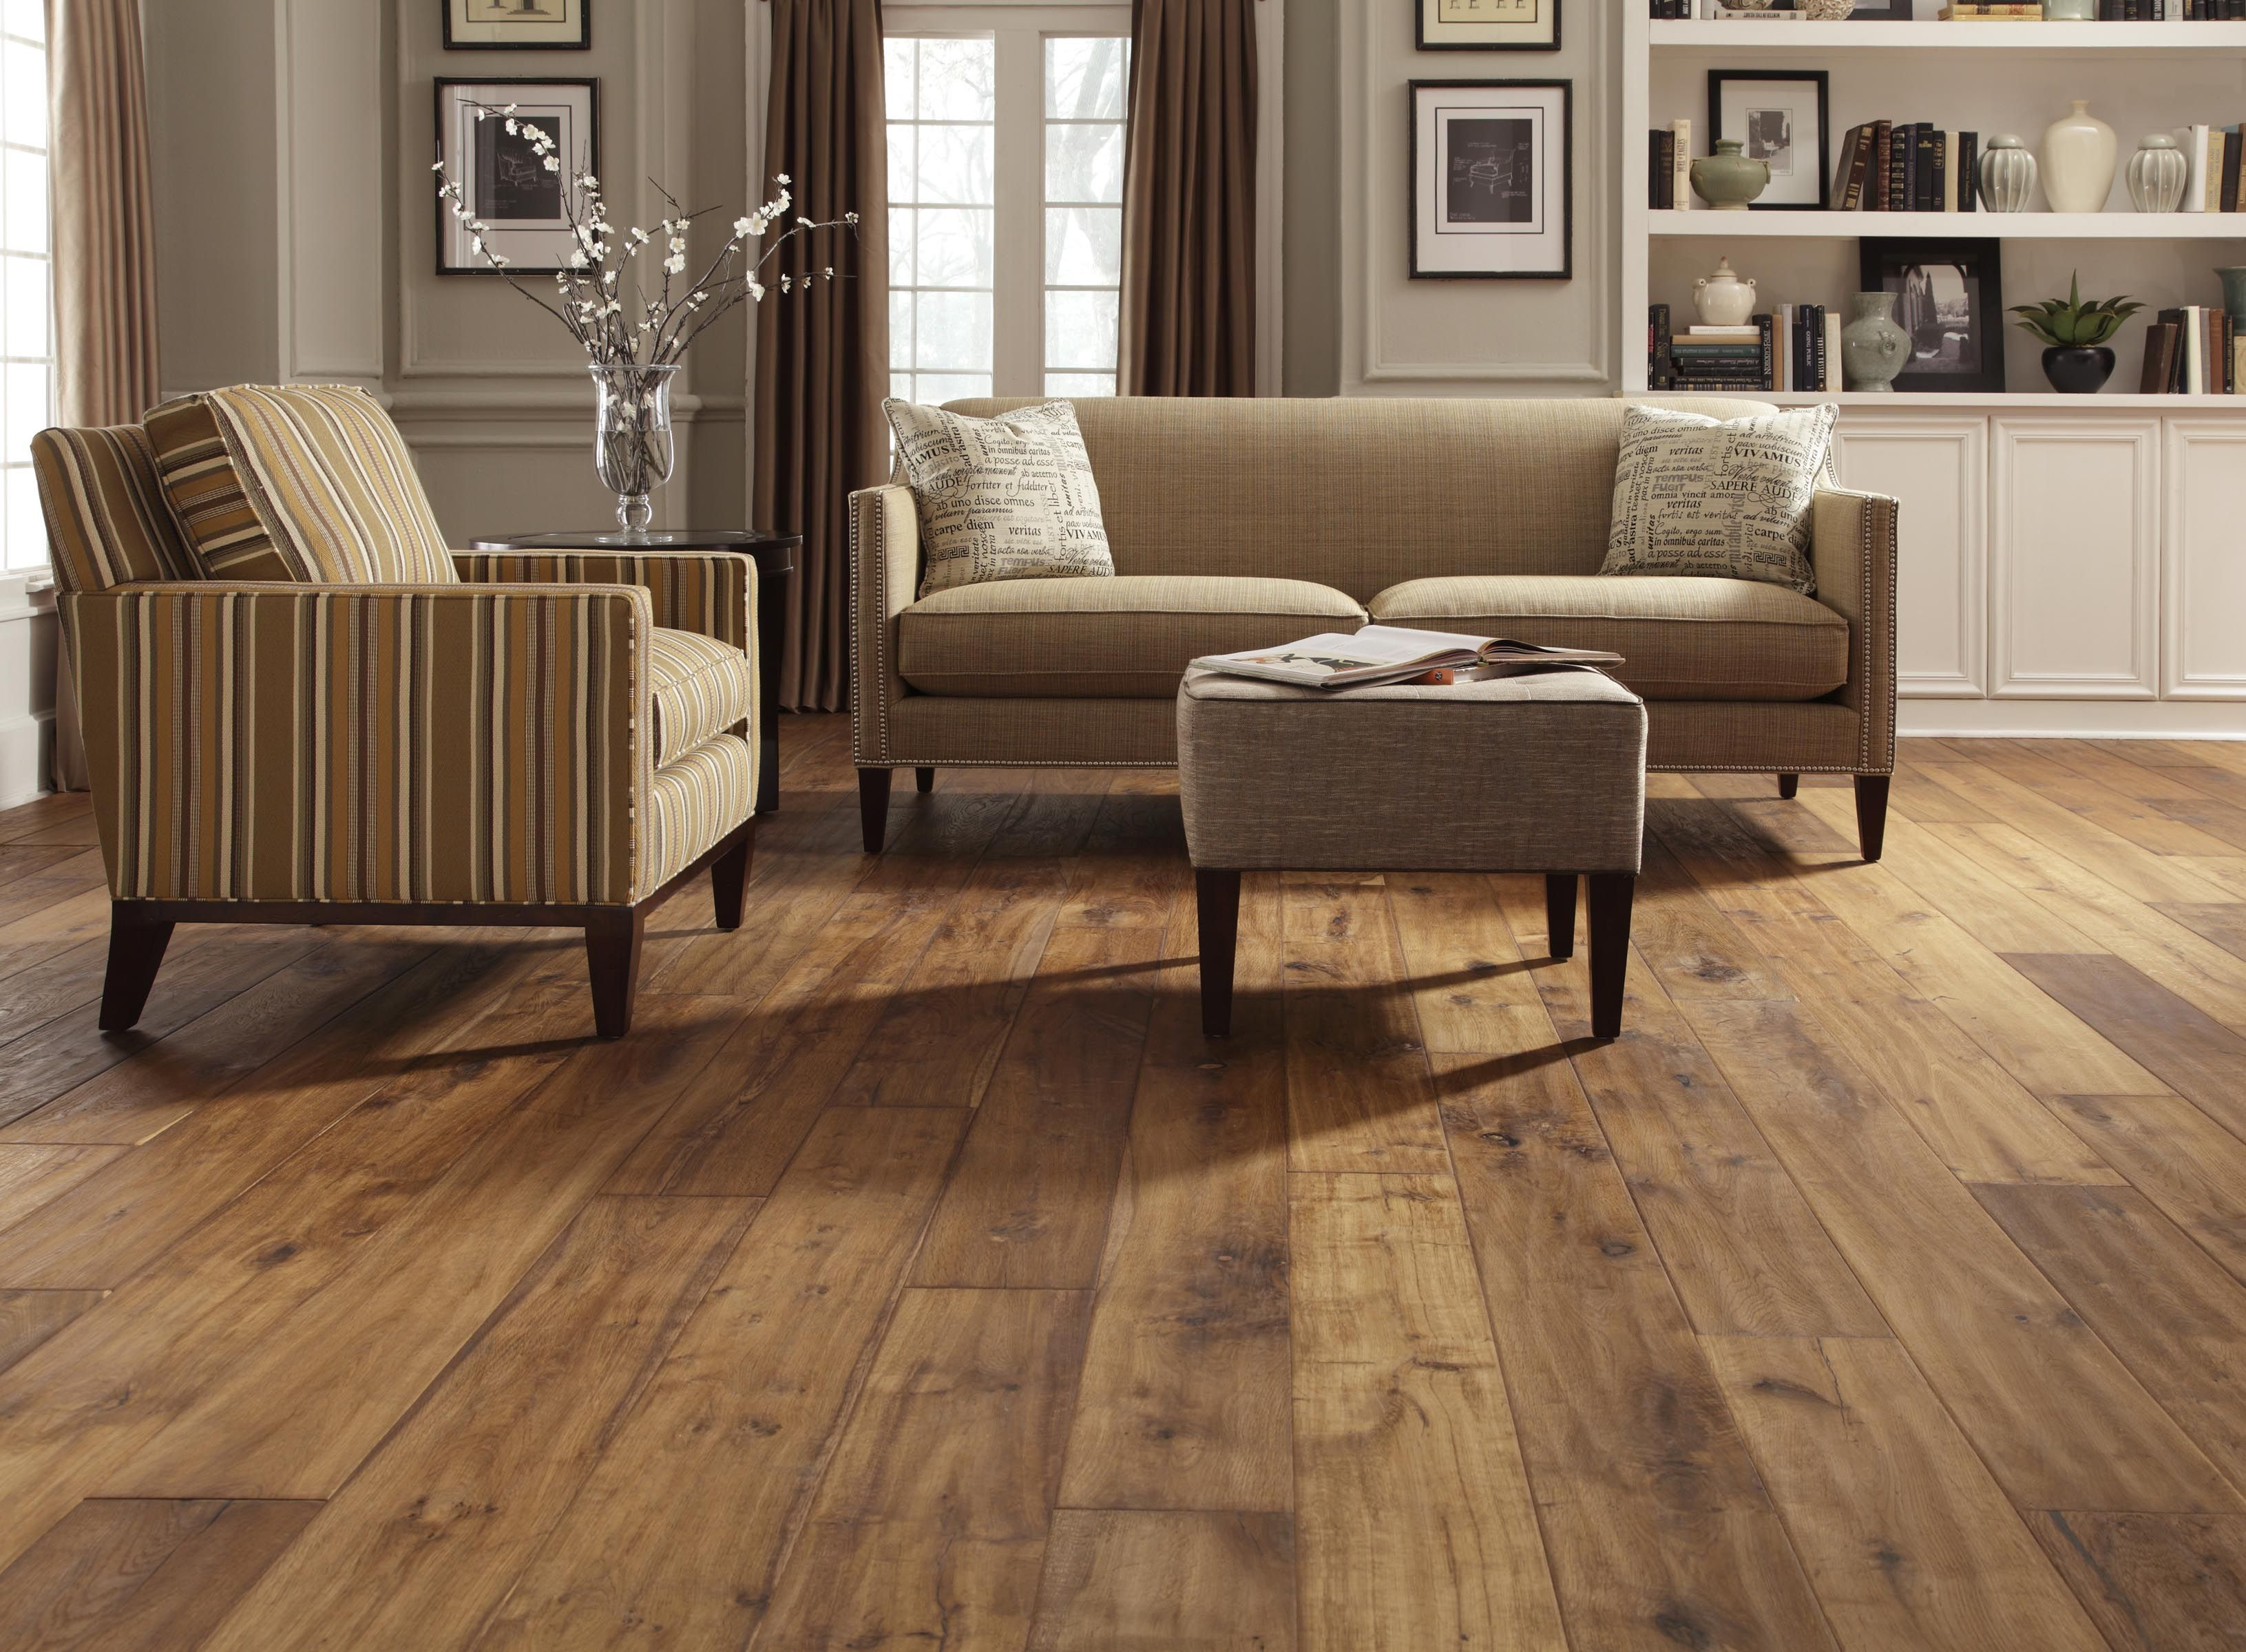 sienna laminate flooring handscraped allen light flo lowes stunning with floors assorted depot trafficmaster home shaw pine roth interior for colors gorgeous and traditional reviews